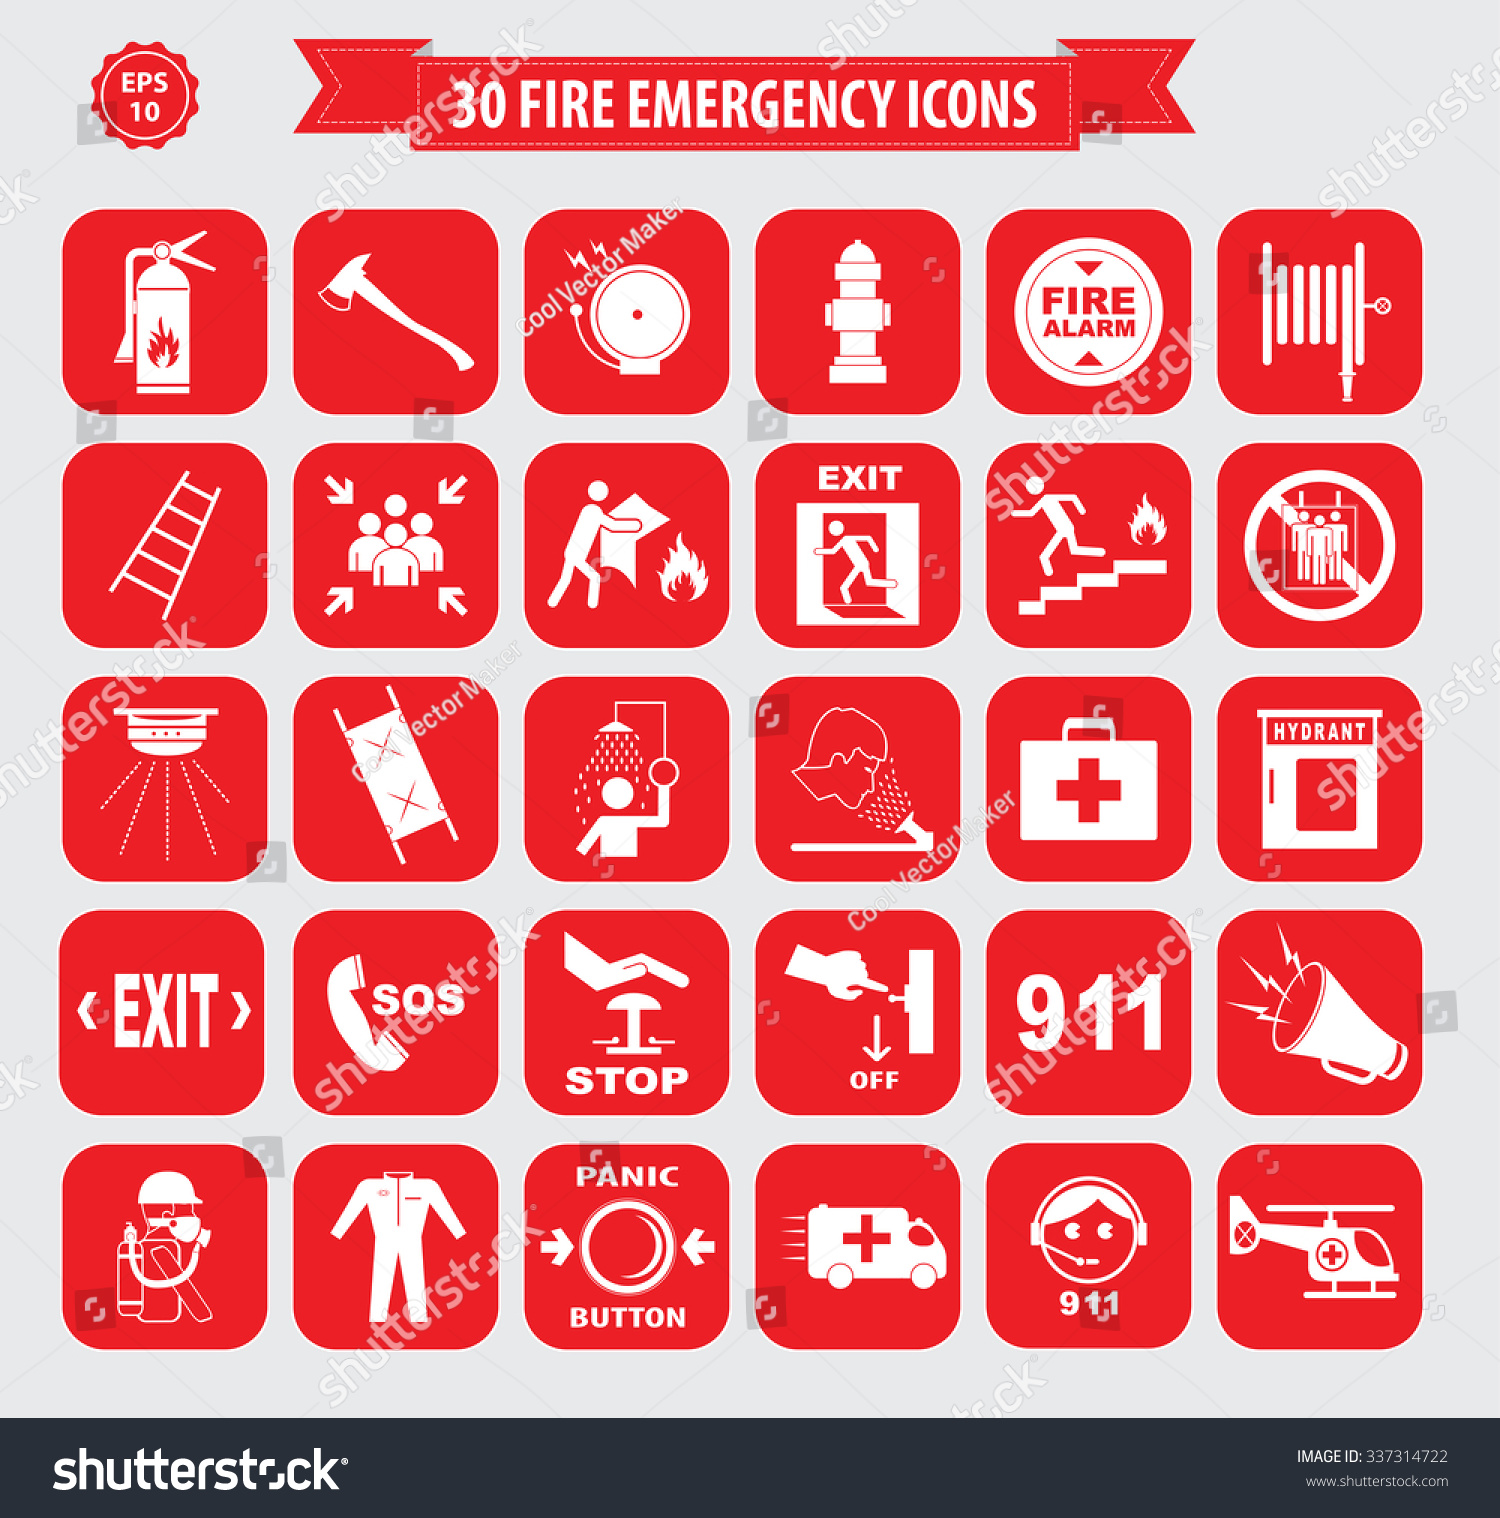 Set Fire Emergency Icon Fire Emergency Stock Vector Royalty Free